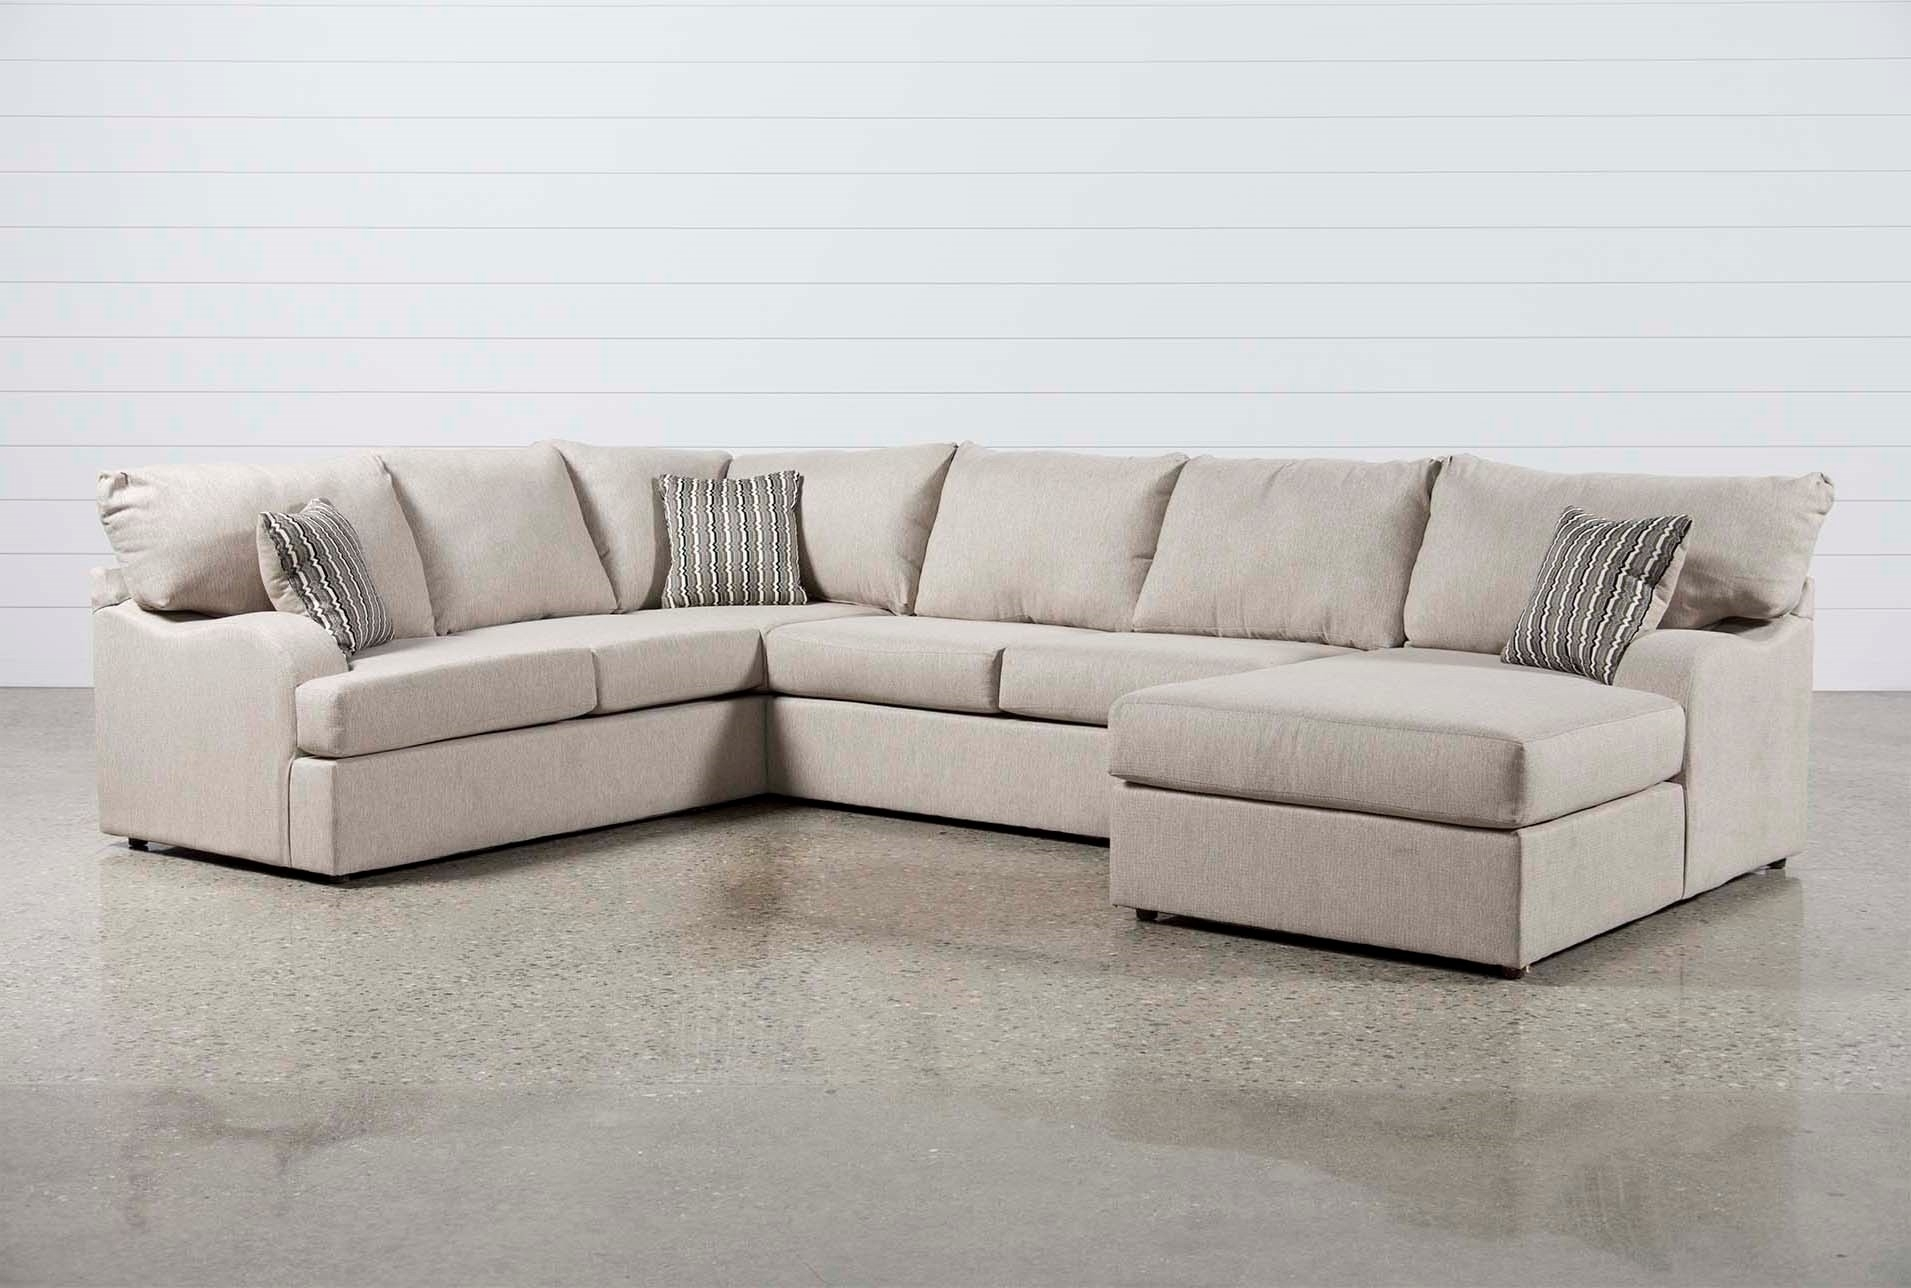 Raf Sectional Turdur 3 Piece W Loveseat Living Spaces 223462 0 Jpg Throughout Turdur 3 Piece Sectionals With Laf Loveseat (Image 19 of 25)